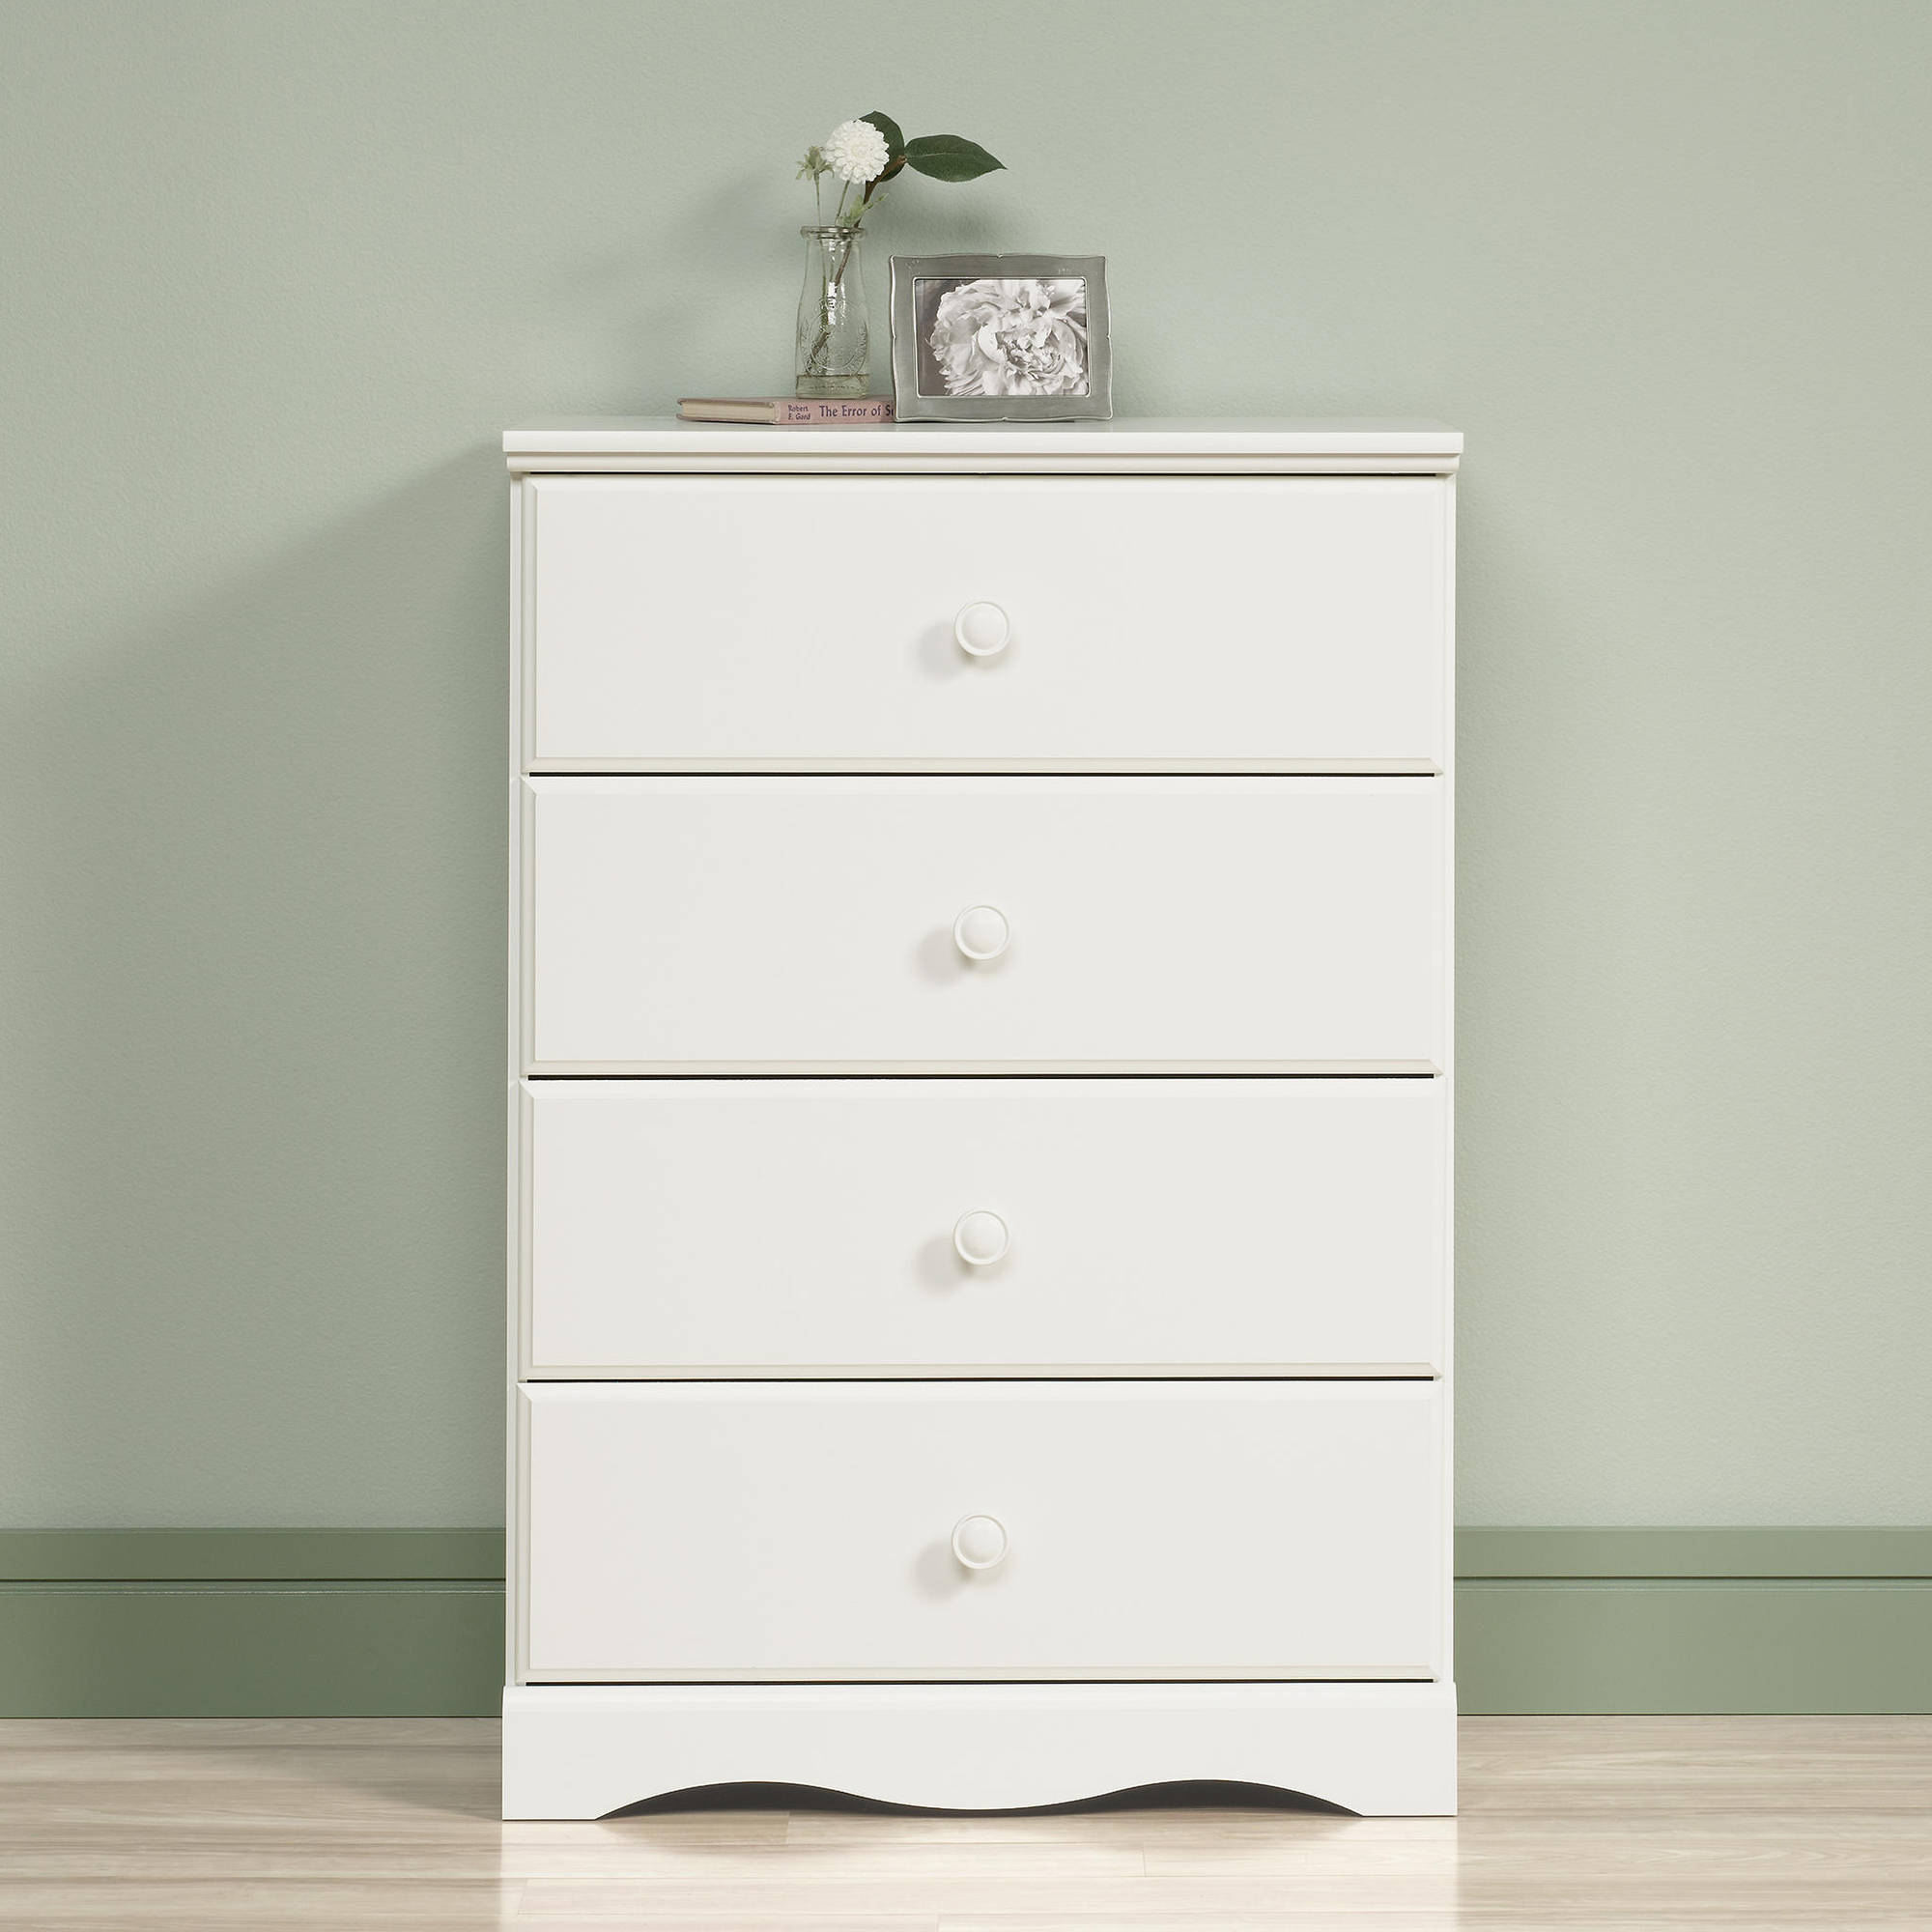 Sauder Storybook 4 Drawer Dresser Multiple Finishes Walmart Com